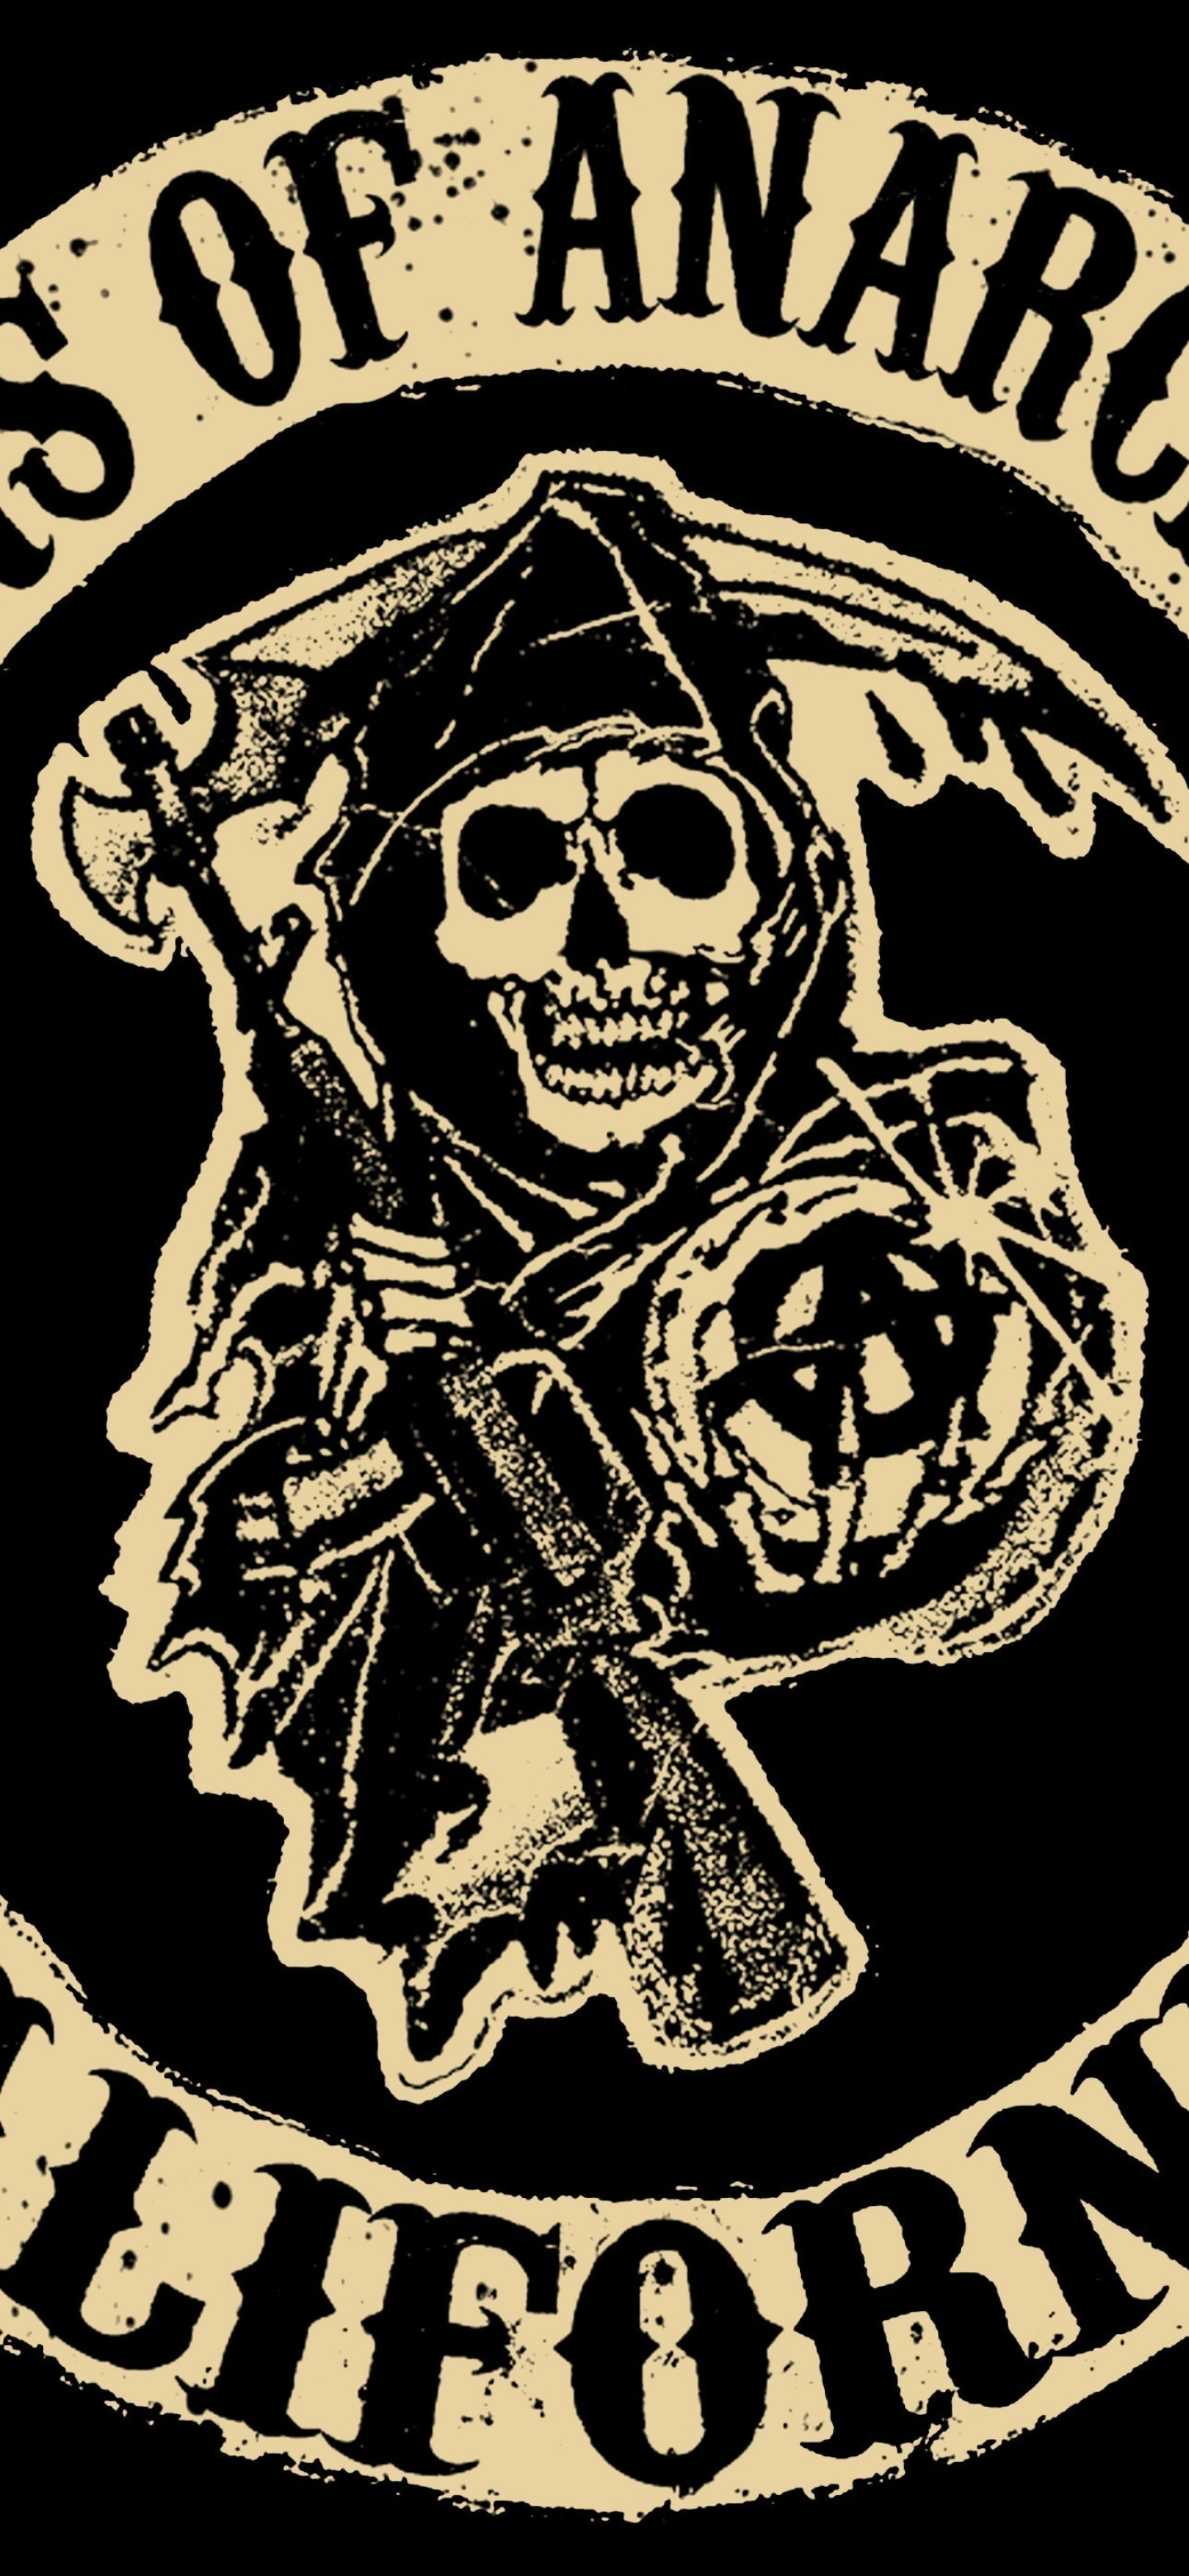 1440x3120 Sons Of Anarchy Tv Series Logo 1440x3120 Resolution